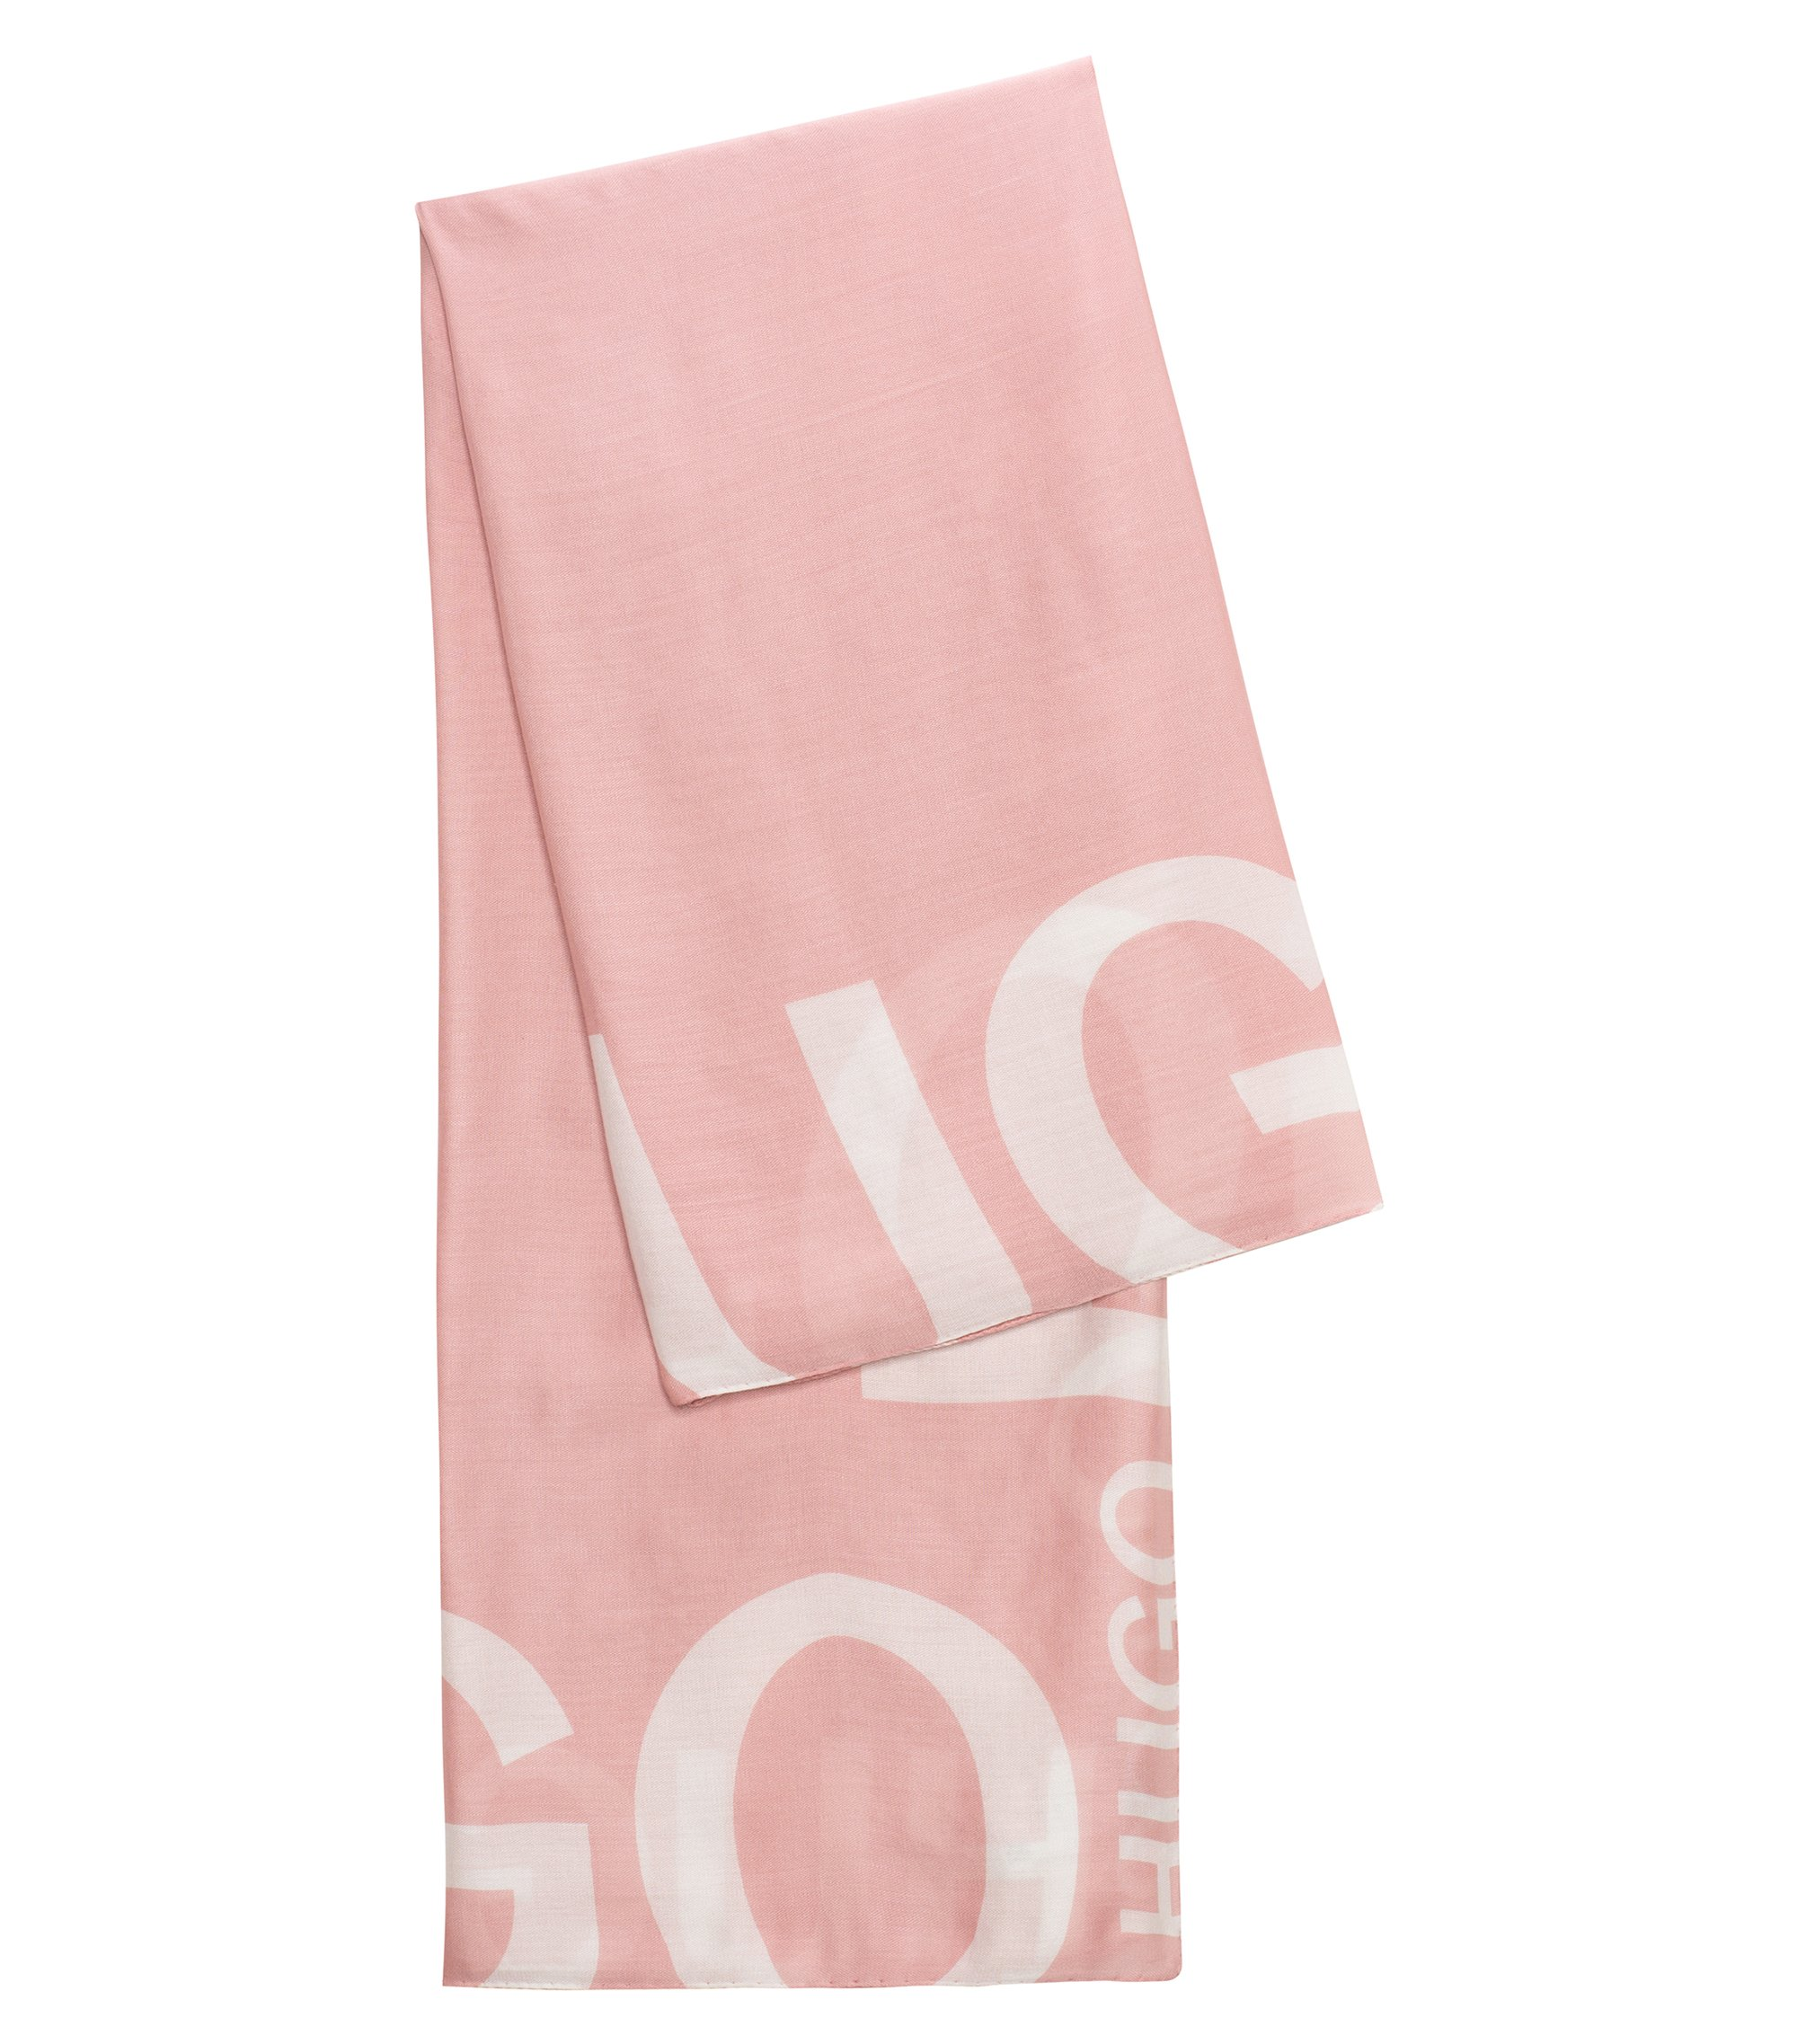 Reverse logo scarf in a modal blend, light pink